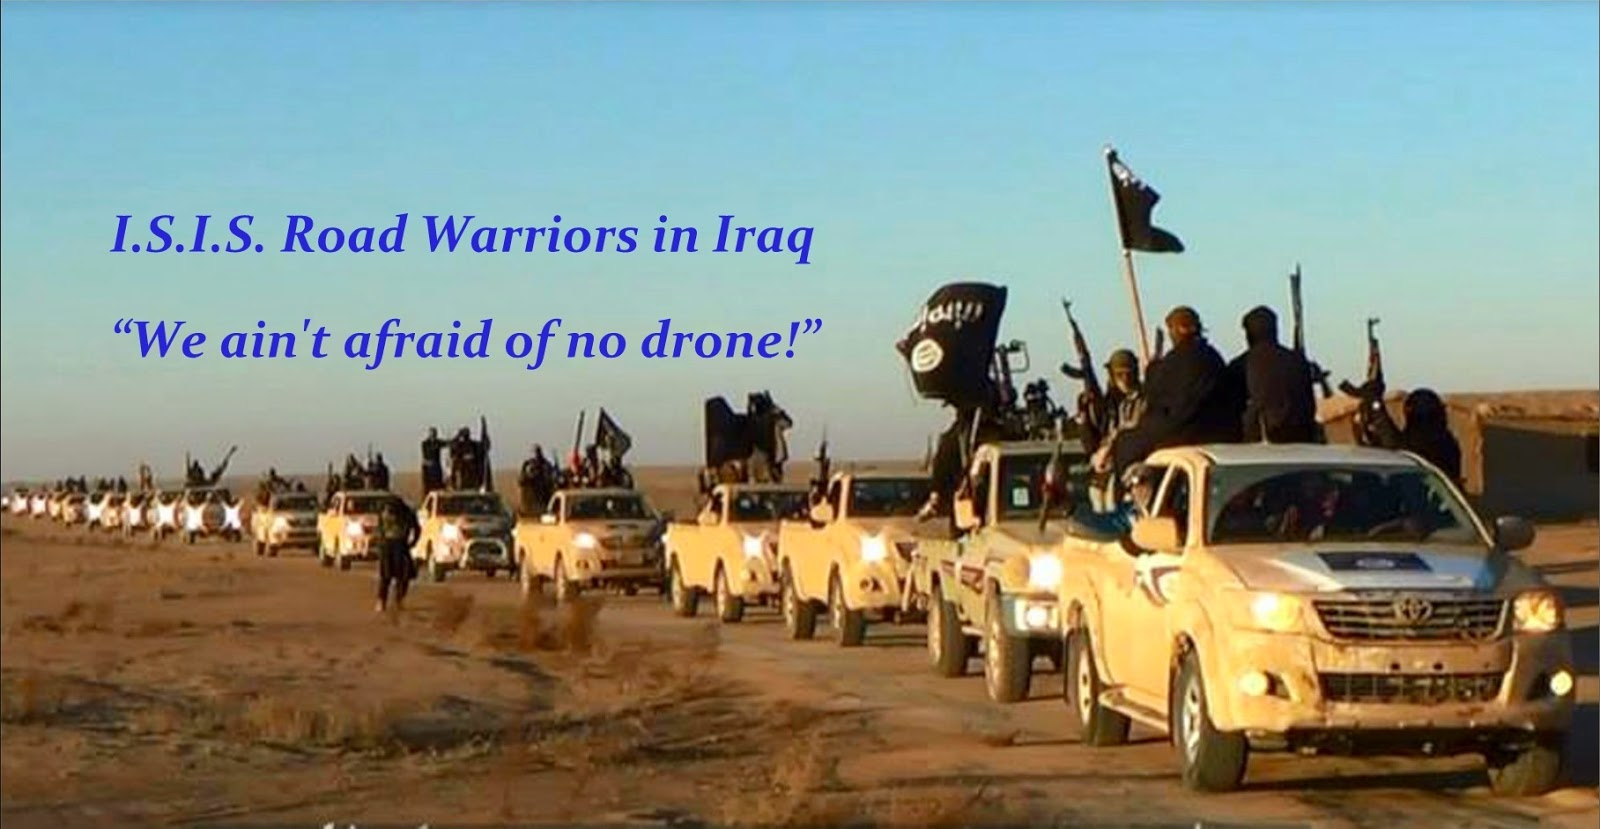 I.S.I.S. Road Warriors - mobile column of ISIS fighters in opening phase of June 2014 campaign in Iraq